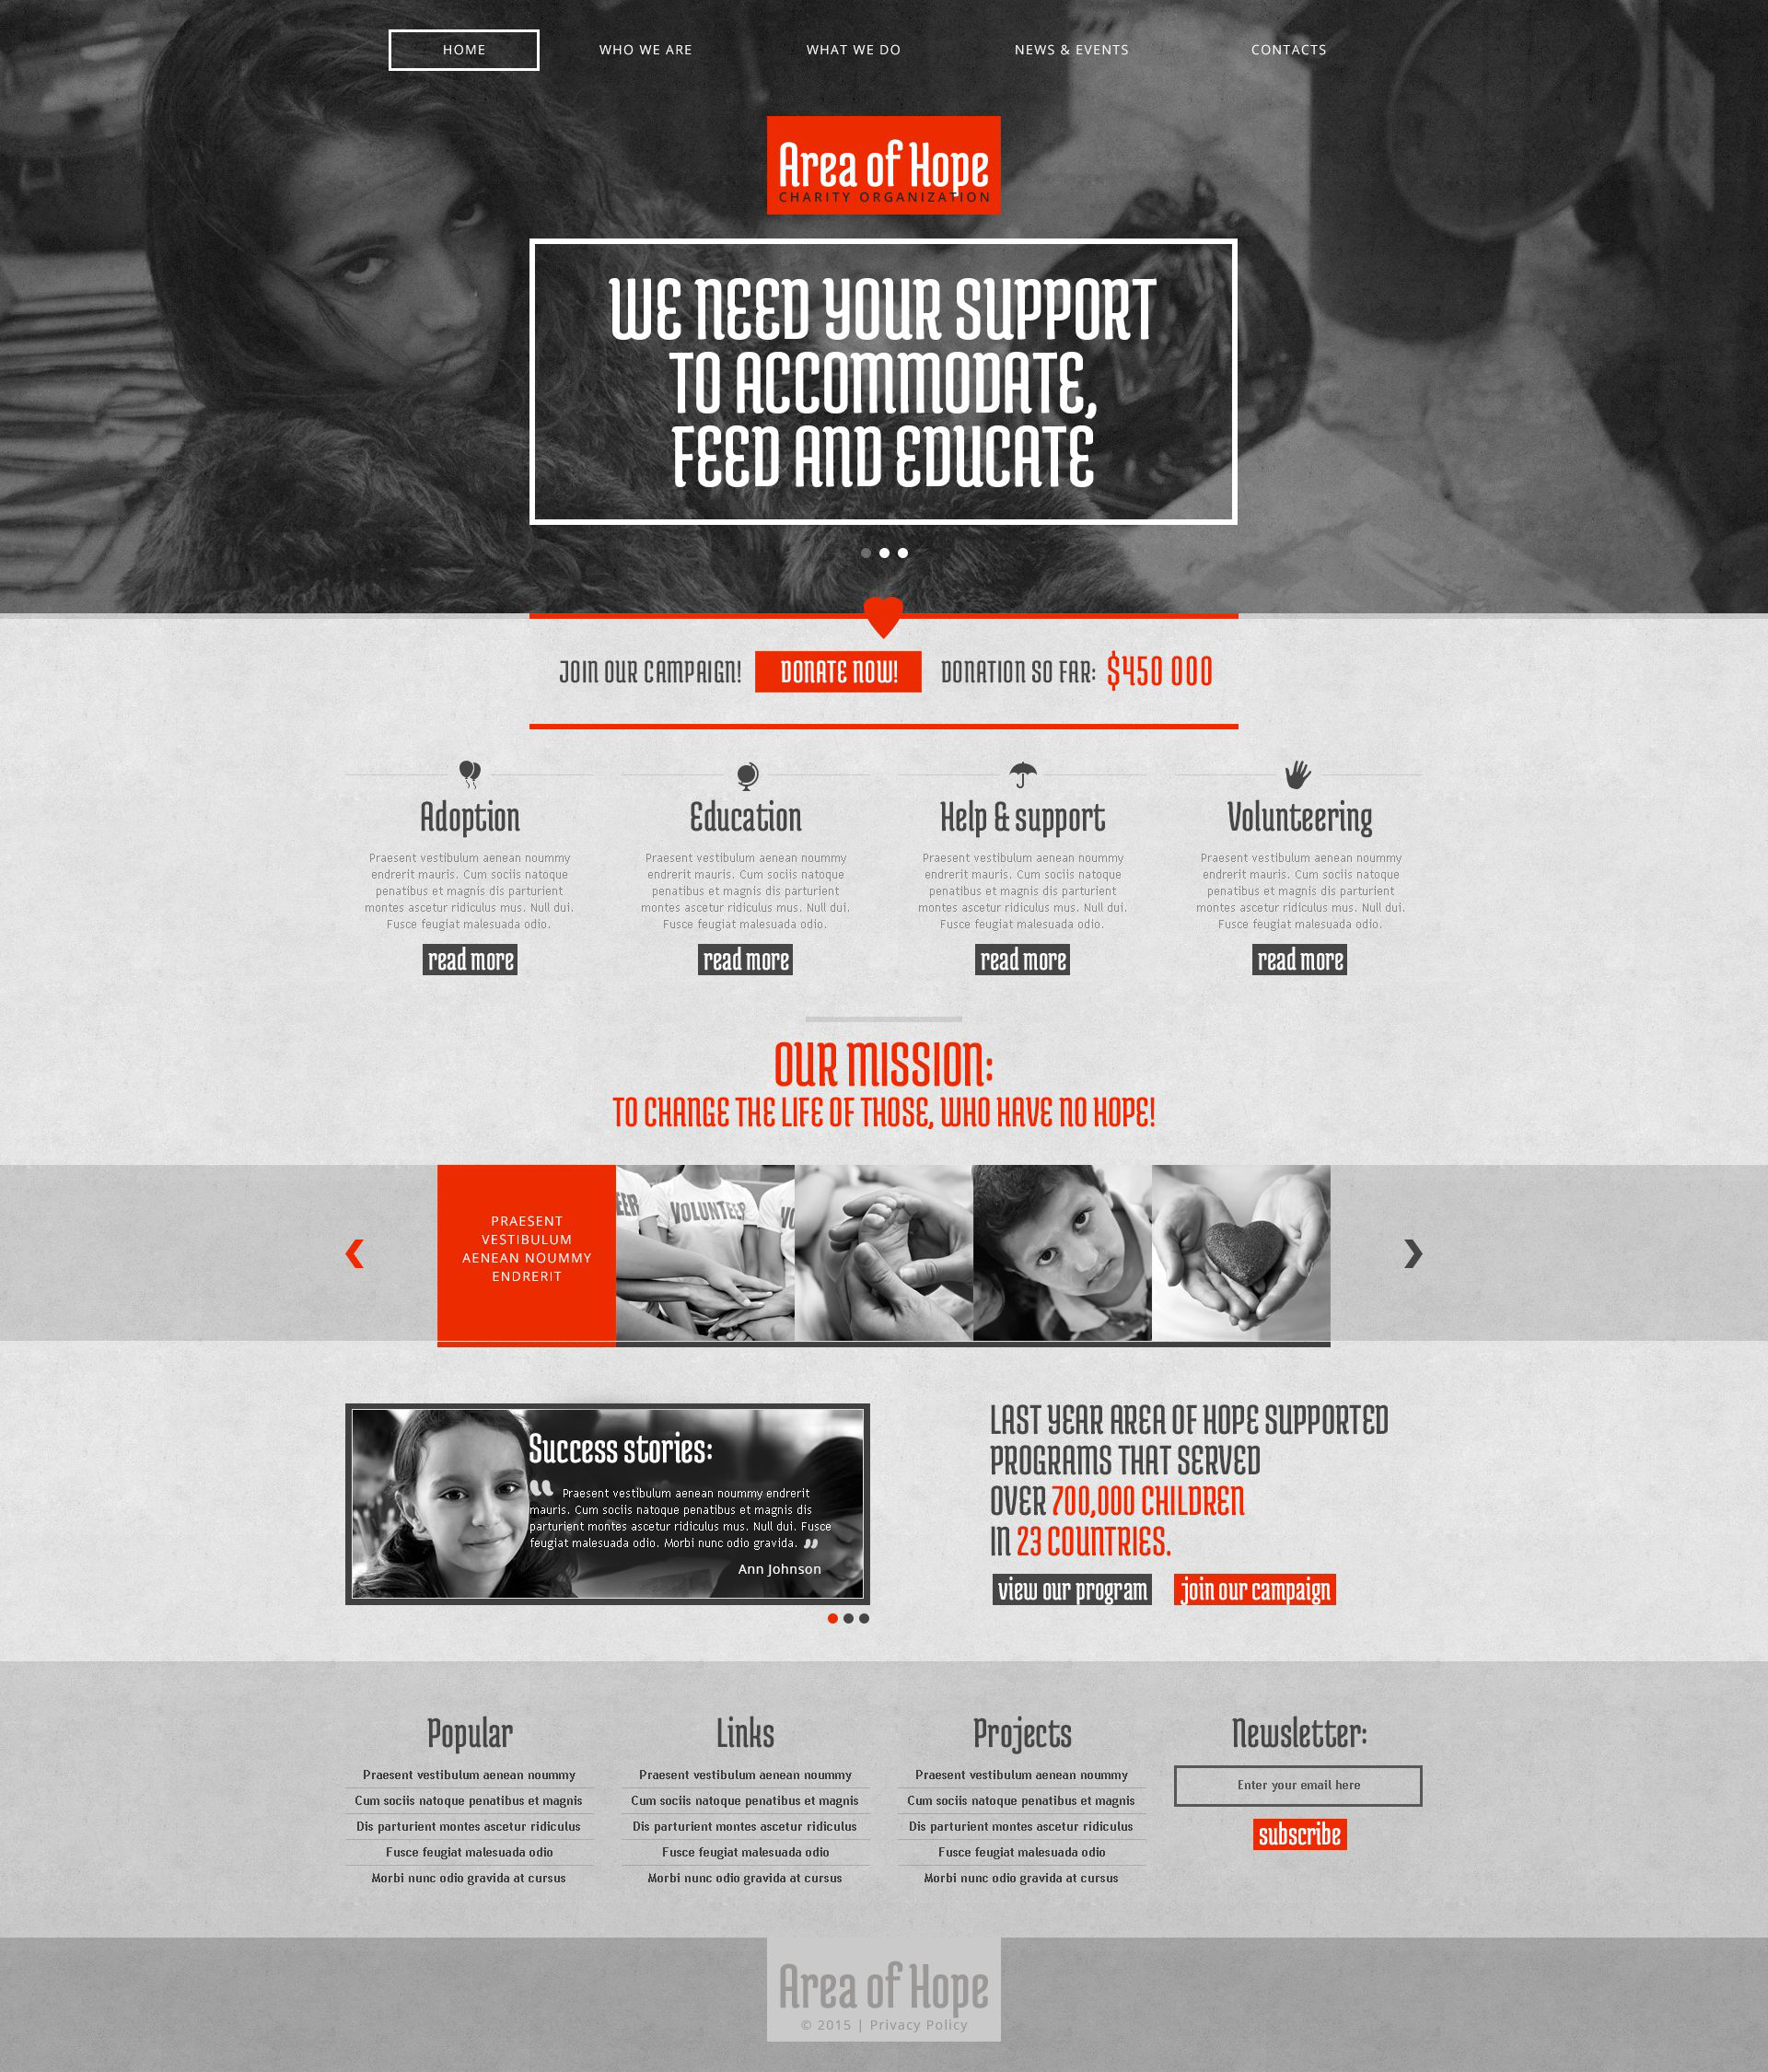 The Area Of Hope Charity Company Drupal Design 52973, one of the best Drupal templates of its kind (most popular, charity), also known as Area of Hope charity company Drupal template, charity company Drupal template, organization Drupal template, children Drupal template, indigent Drupal template, donation Drupal template, adoption Drupal template, relief Drupal template, fund Drupal template, pecuniary Drupal template, aid Drupal template, non-profit Drupal template, mission Drupal template, team Drupal template, work Drupal template, department Drupal template, work Drupal template, project Drupal template, children Drupal template, events Drupal template, partner and related with Area of Hope charity company, charity company, organization, children, indigent, donation, adoption, relief, fund, pecuniary, aid, non-profit, mission, team, work, department, work, project, children, events, partner, etc.